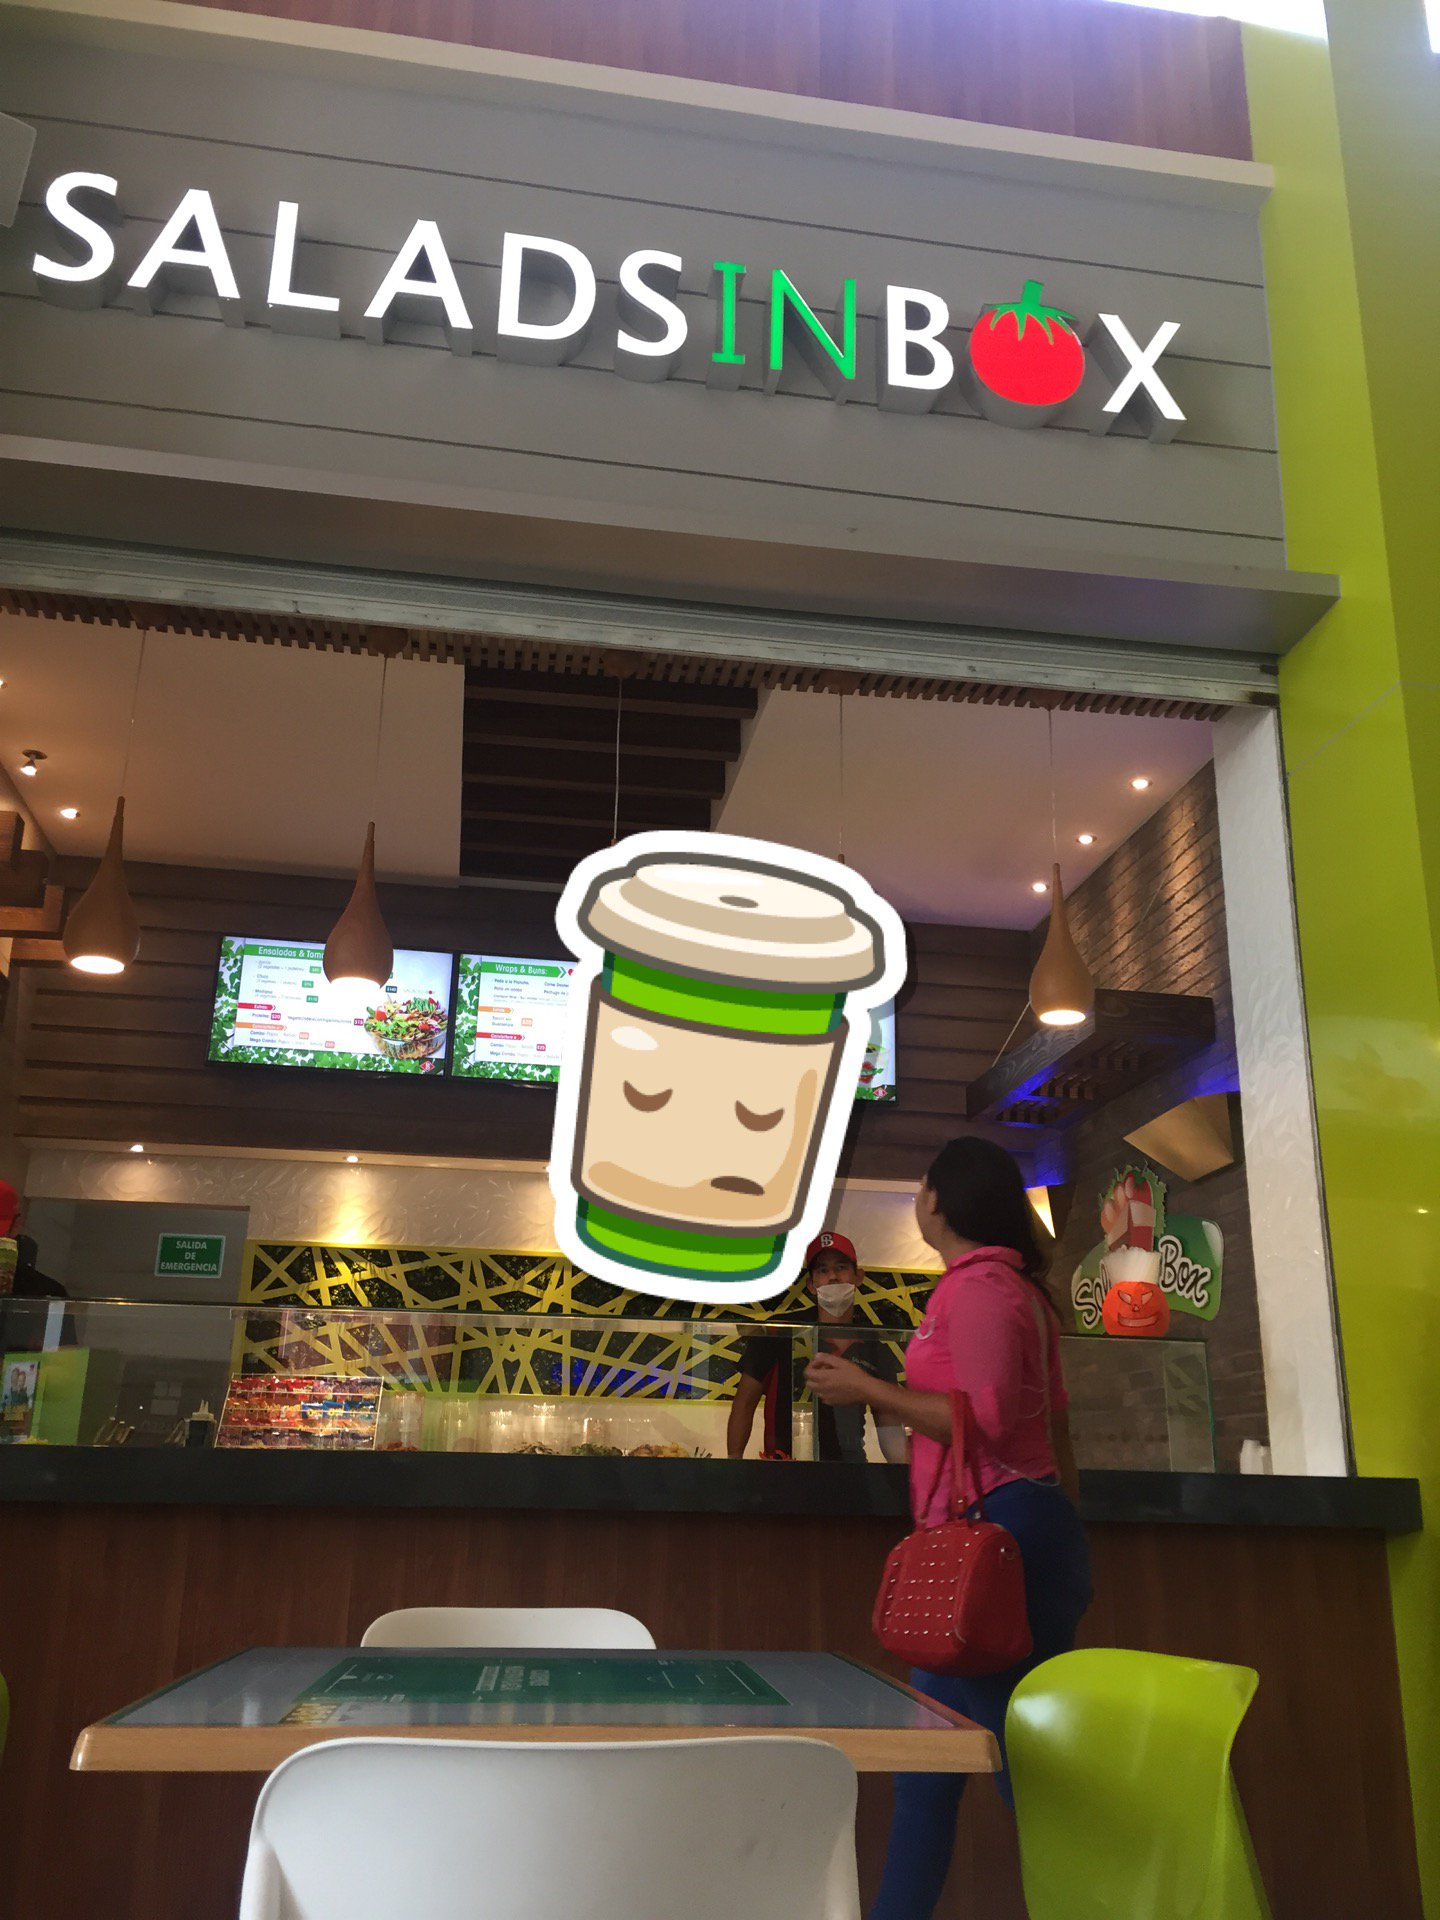 Lunch time #saladsinbox (@ Plaza Paseo San Isidro in Culiacán, Sinaloa) https://t.co/7klRXu6mdI https://t.co/Y9XnB3KecG